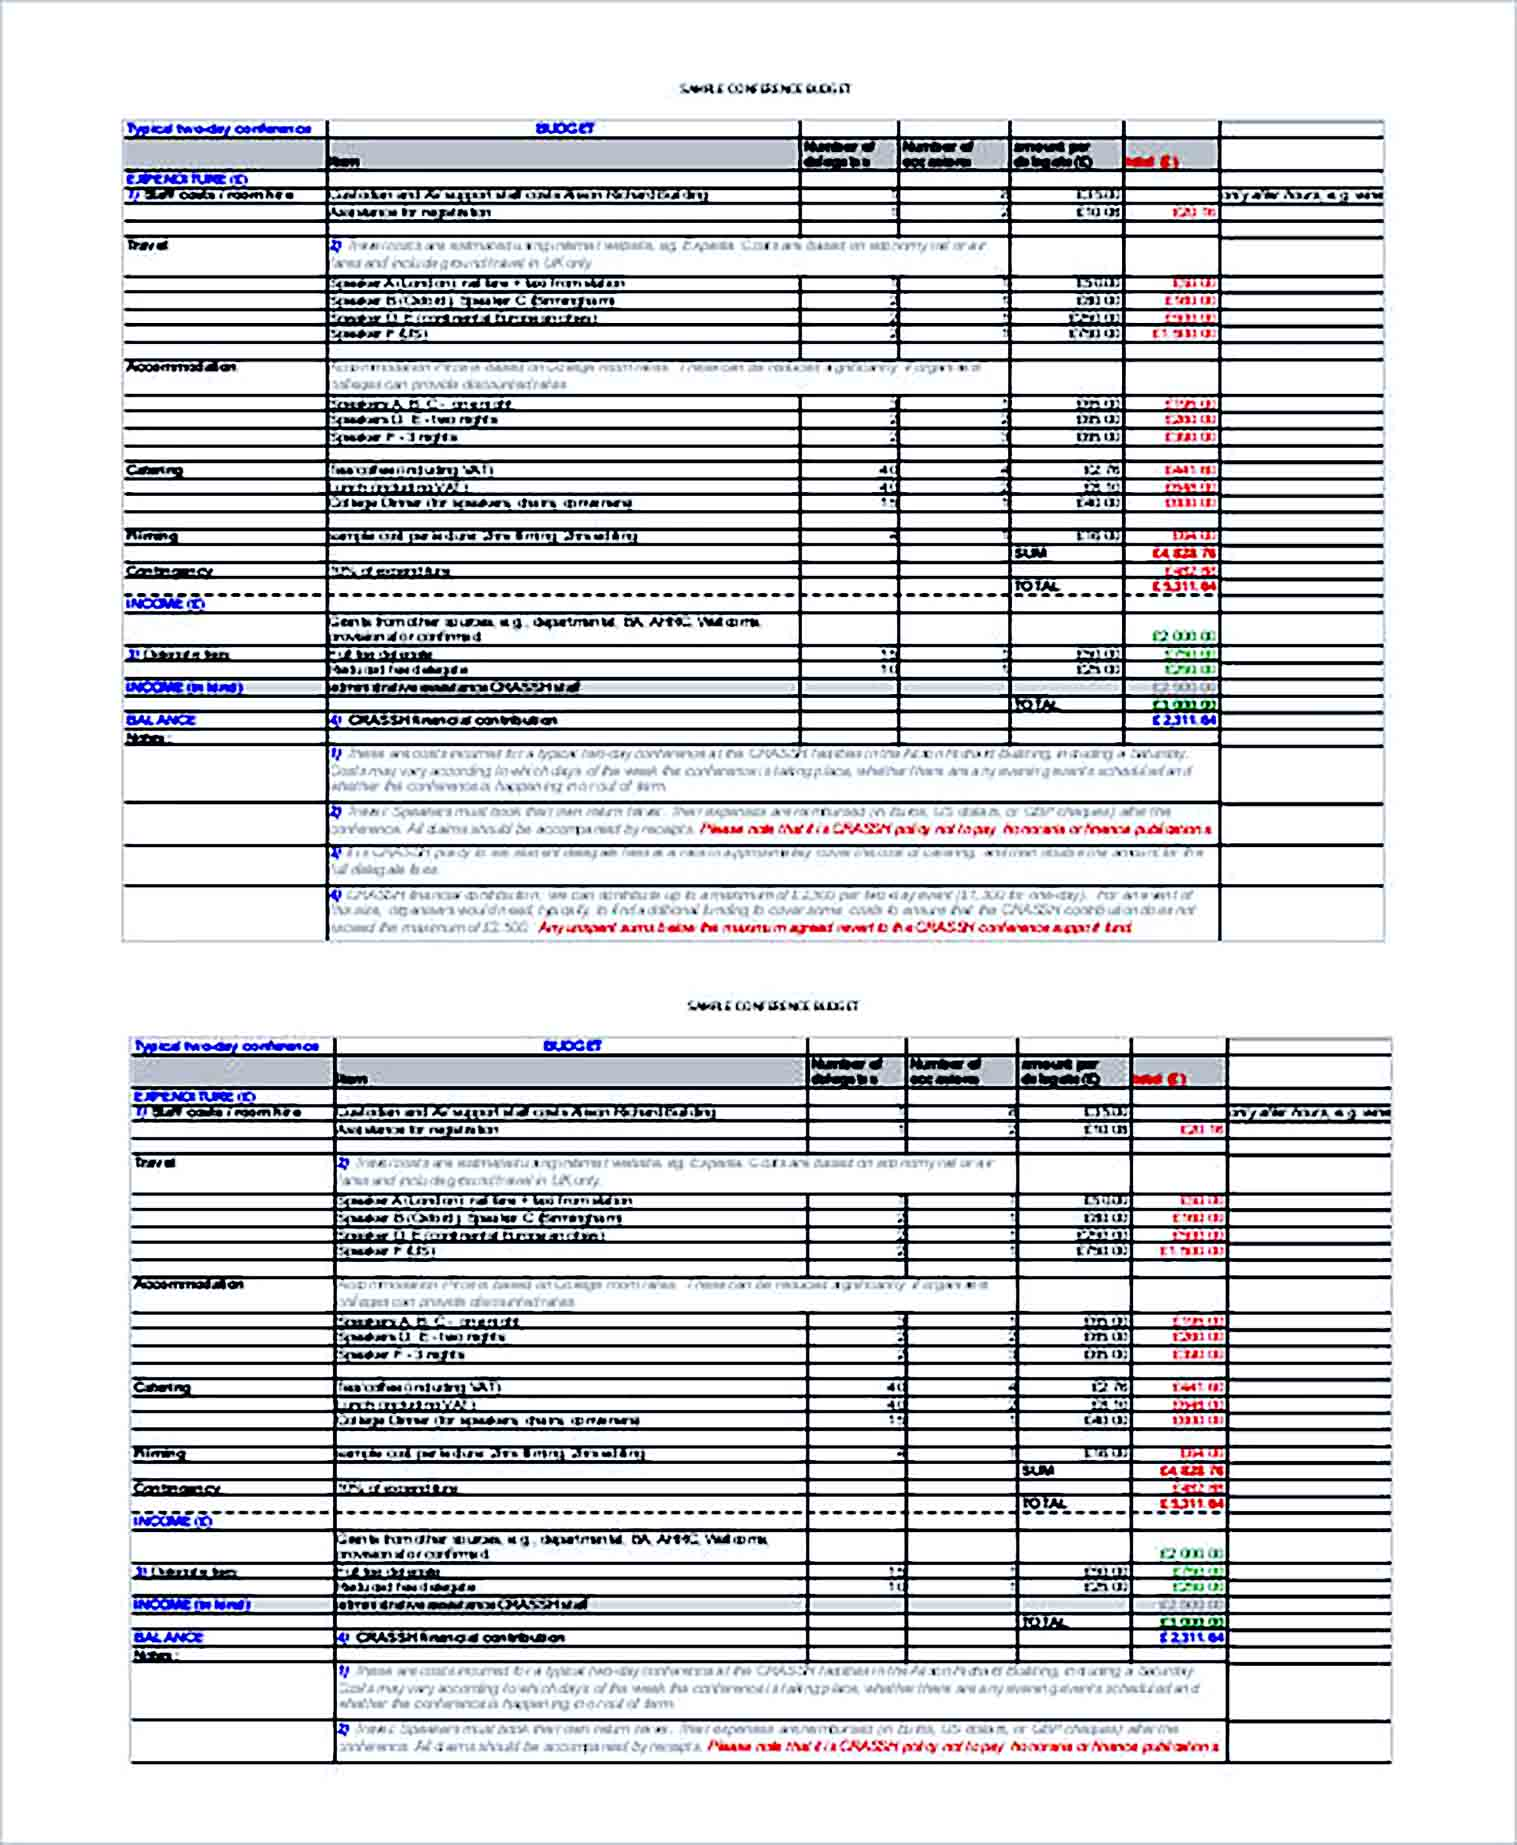 Sample Two Day Conference Budget